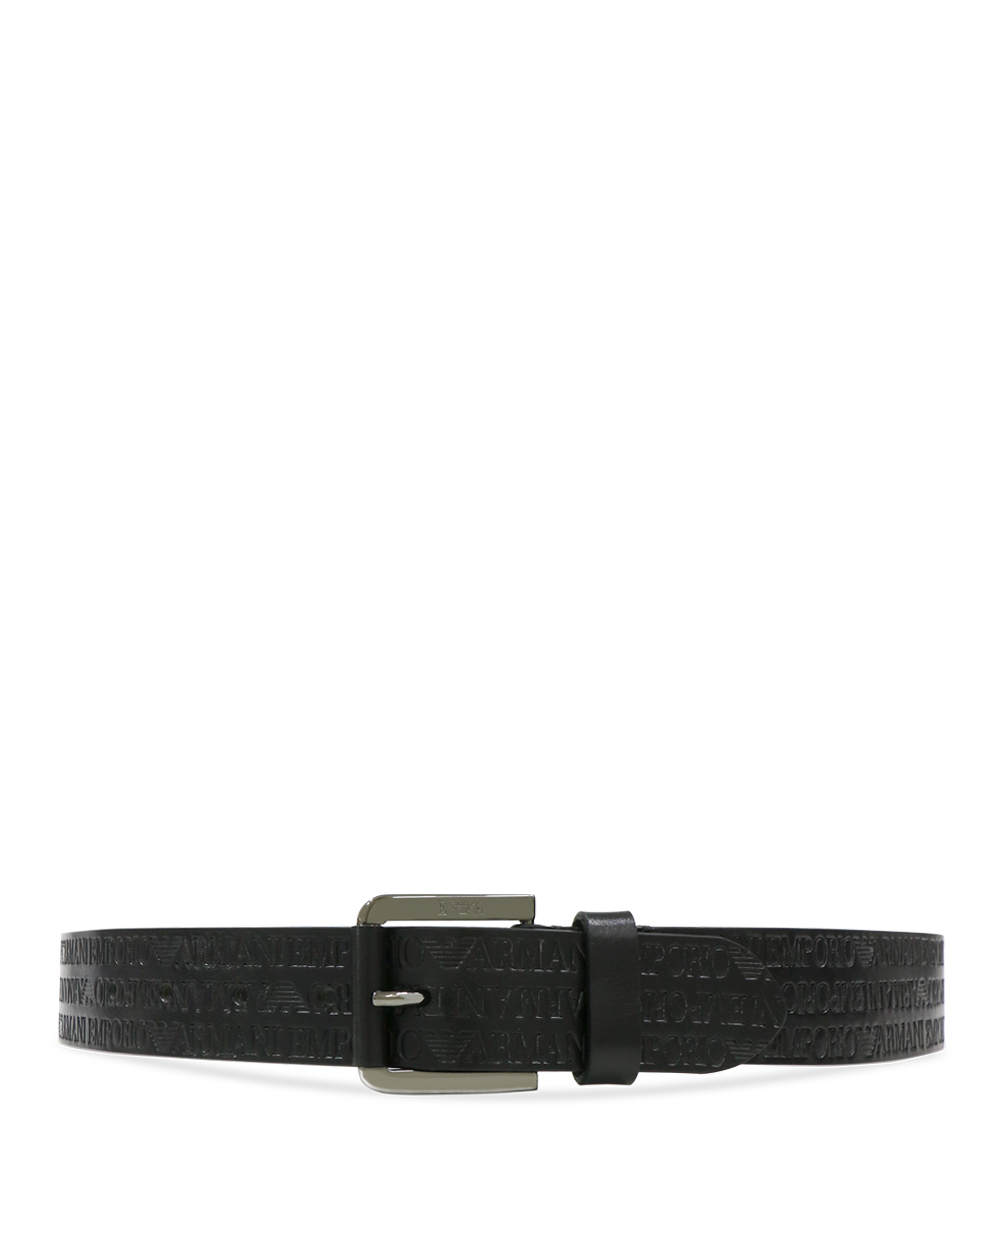 LOGO Printed Leather Pin Buckle Belt